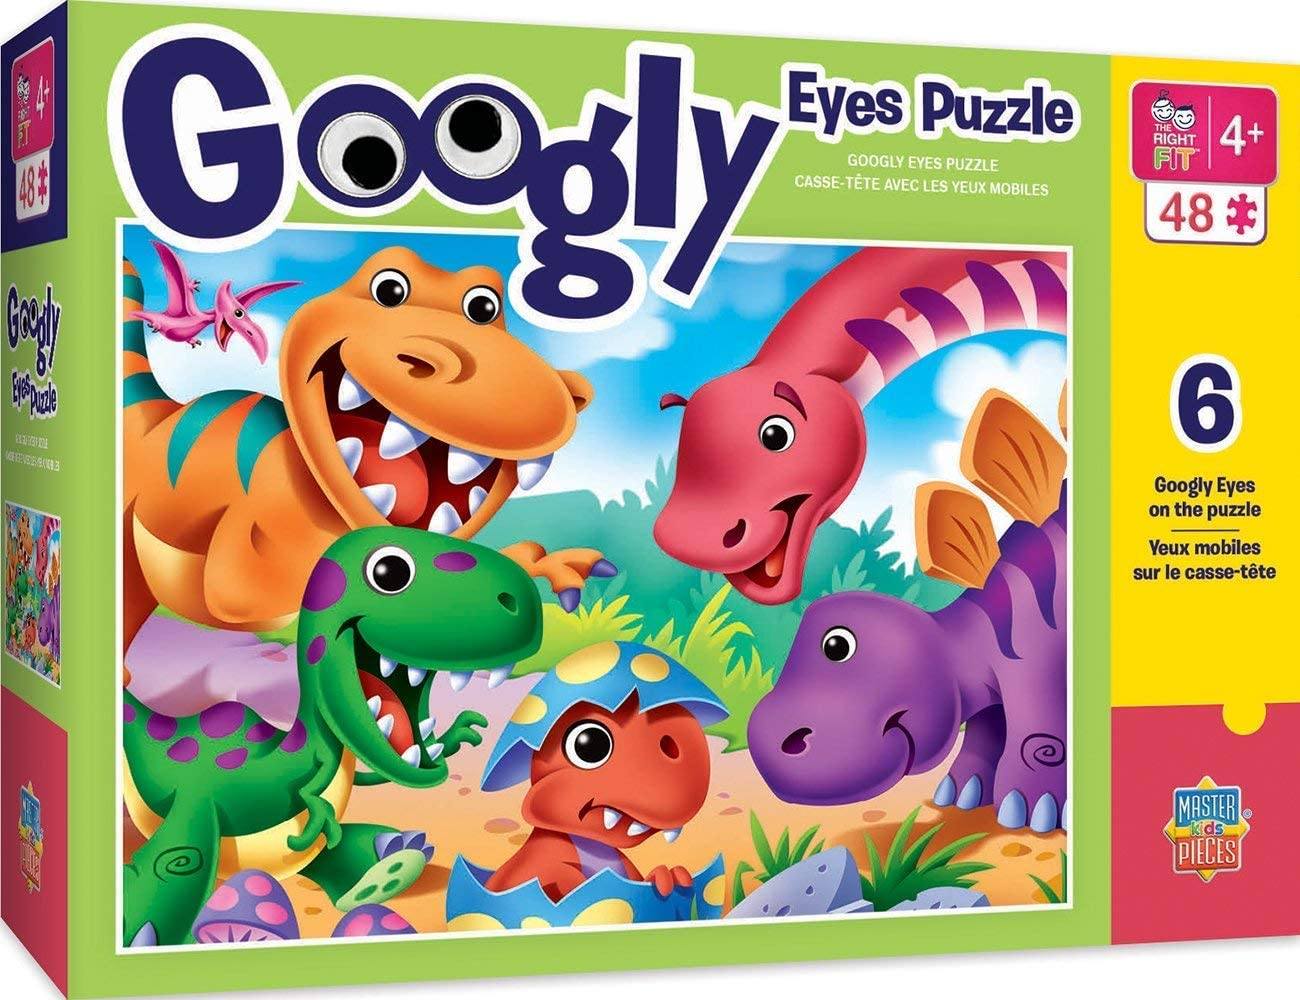 MasterPieces The Right Fit Kids Googly Eyes Jigsaw Puzzle, Dinosaurs, Tillywig Top Fun Award, 48 Pieces, For Ages 4+